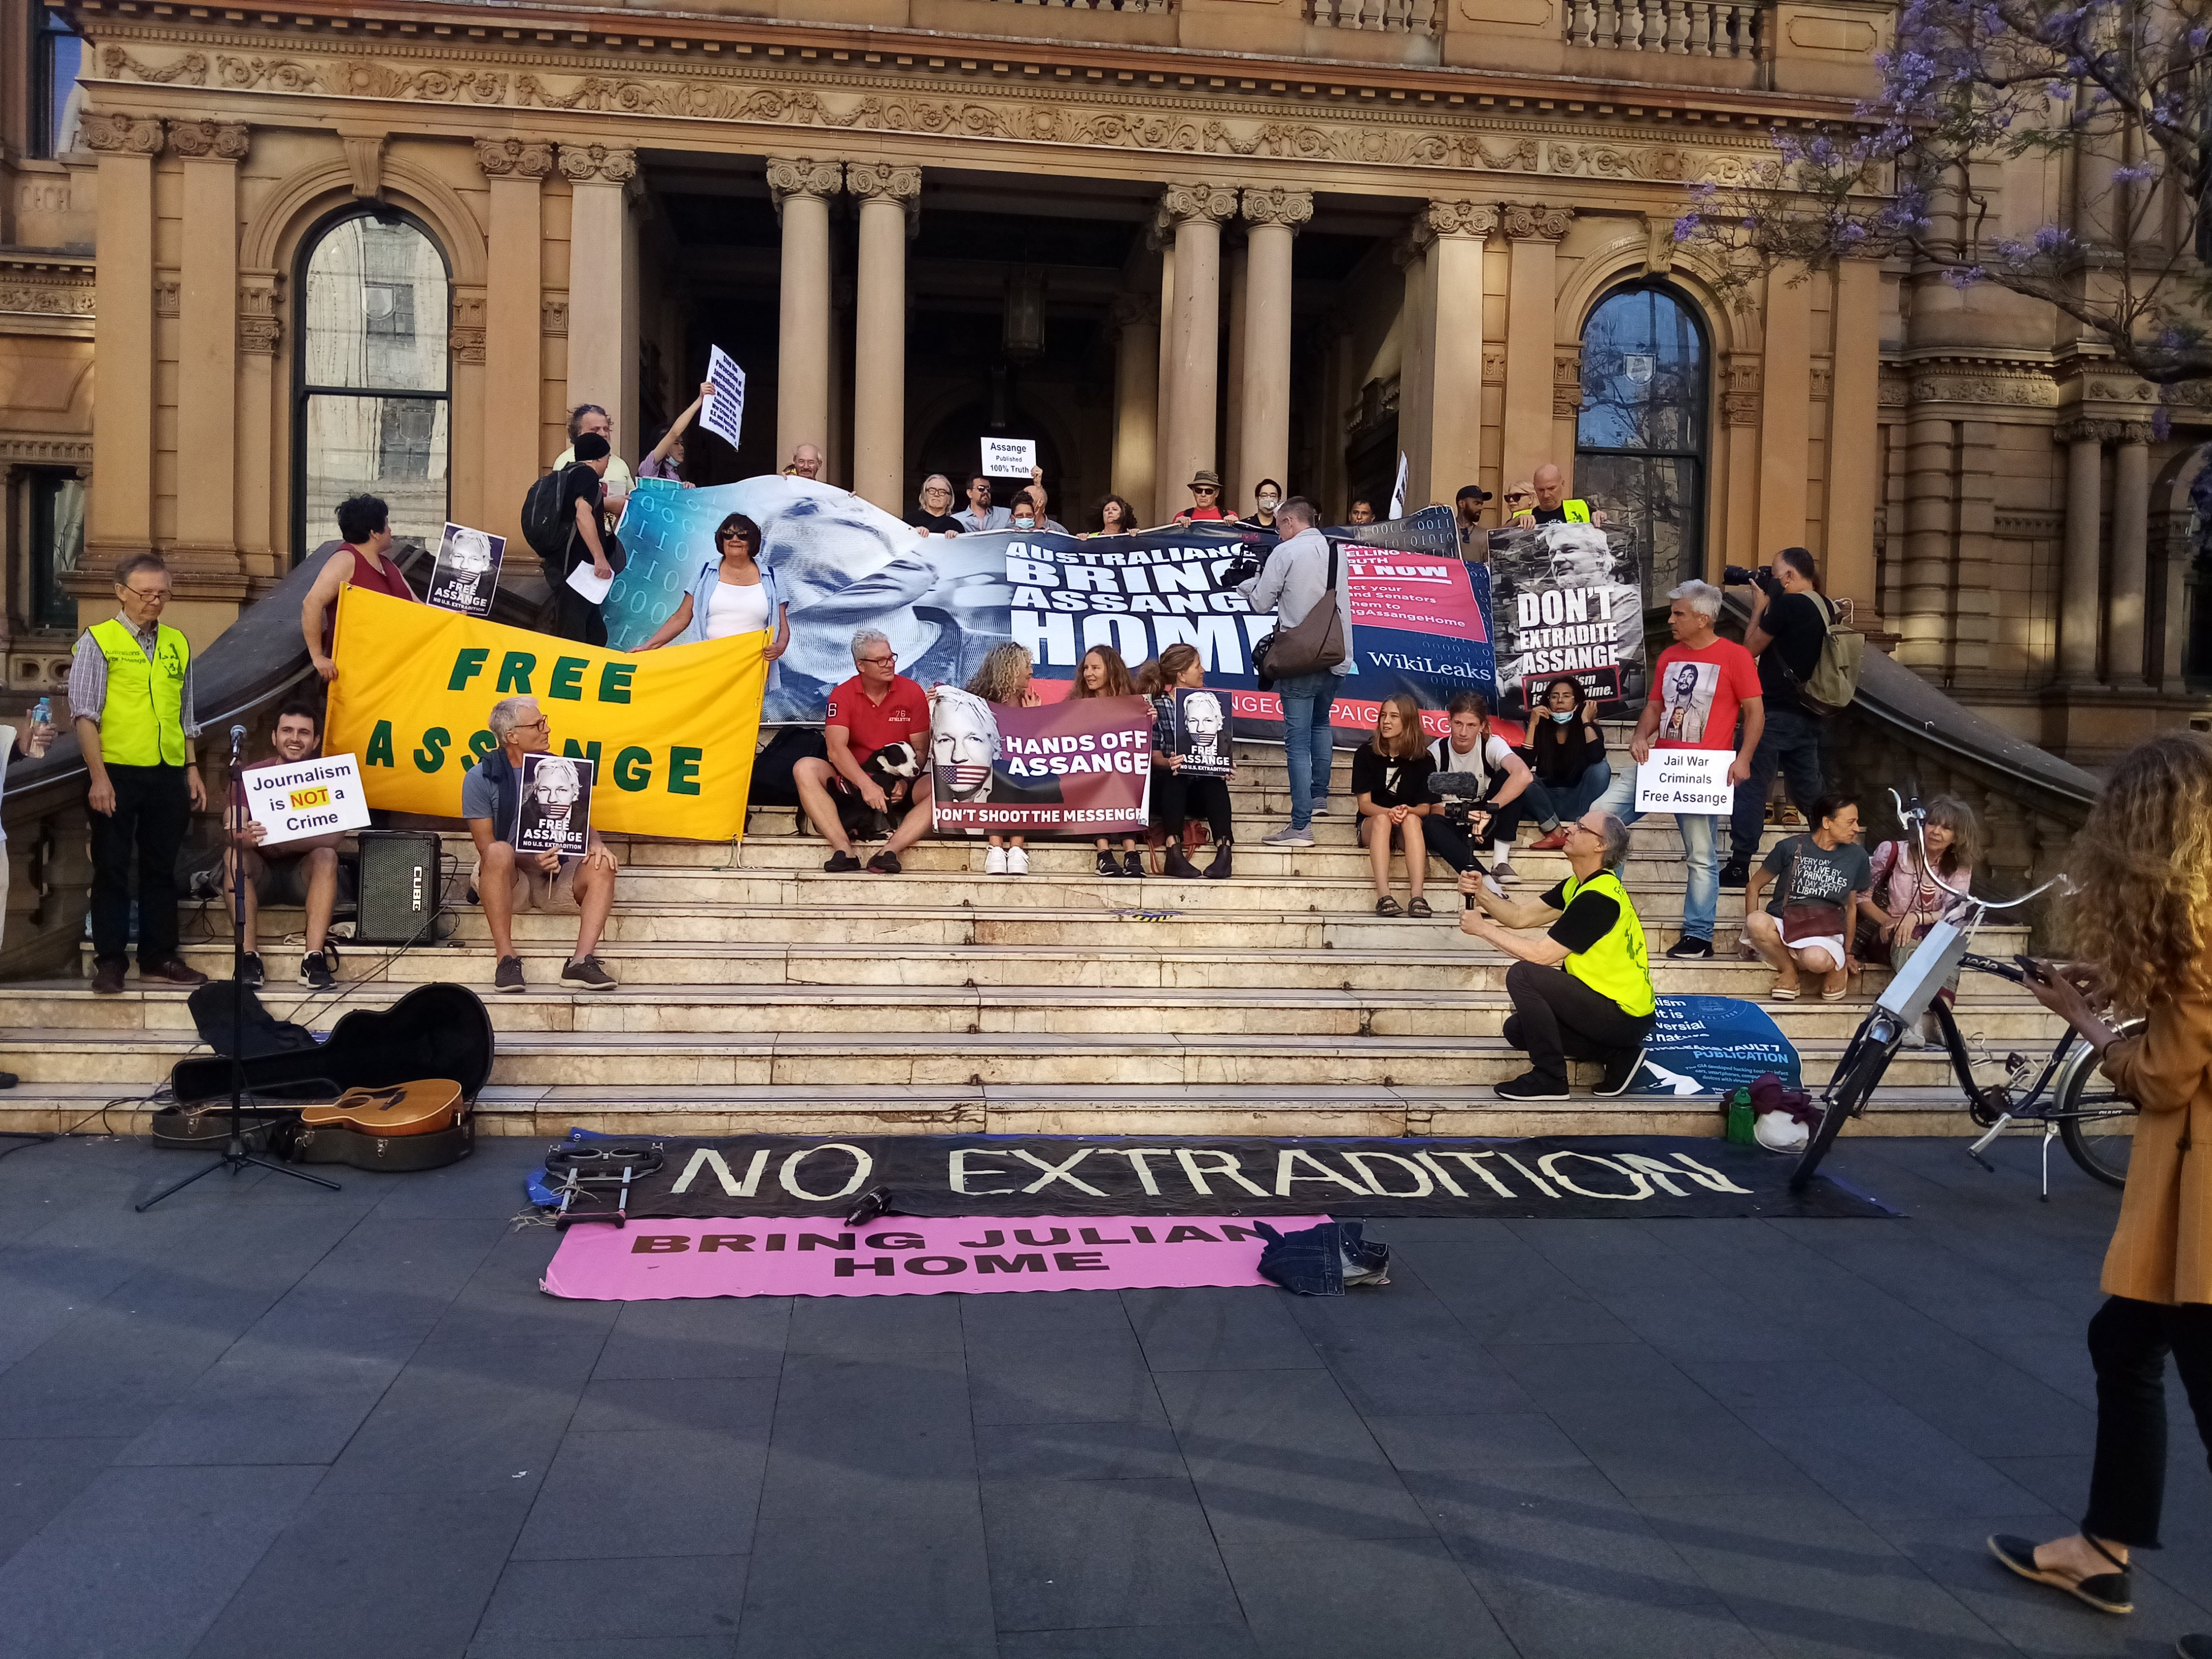 protest_photos:sydney_town-hall_2020_11.jpg